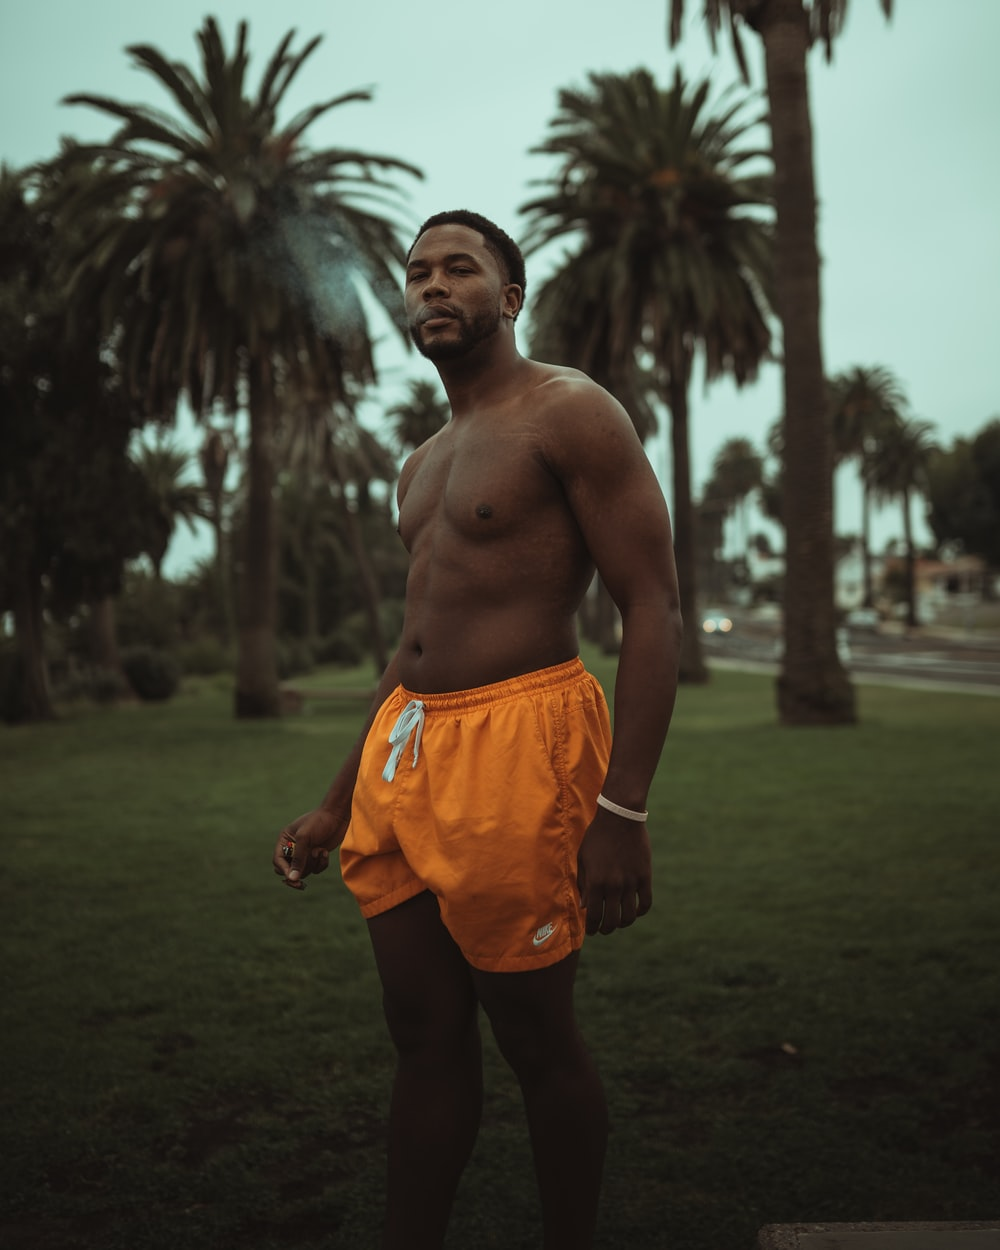 topless man in orange shorts standing on green grass field during daytime